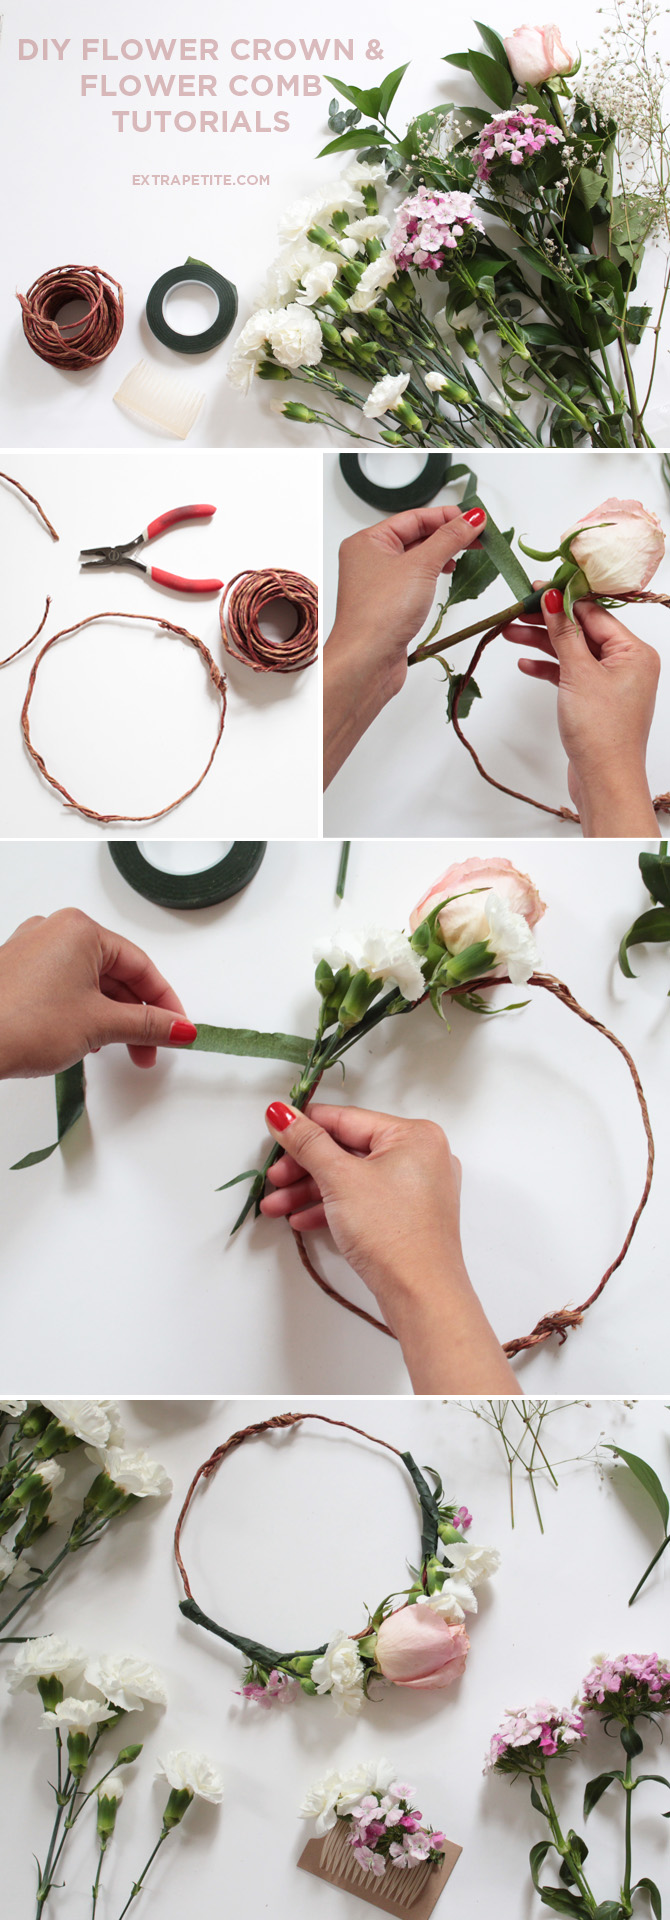 Flower crown comb diy tutorial bridal shower activity extra petite diy flower crown floral comb tutorial bridal izmirmasajfo